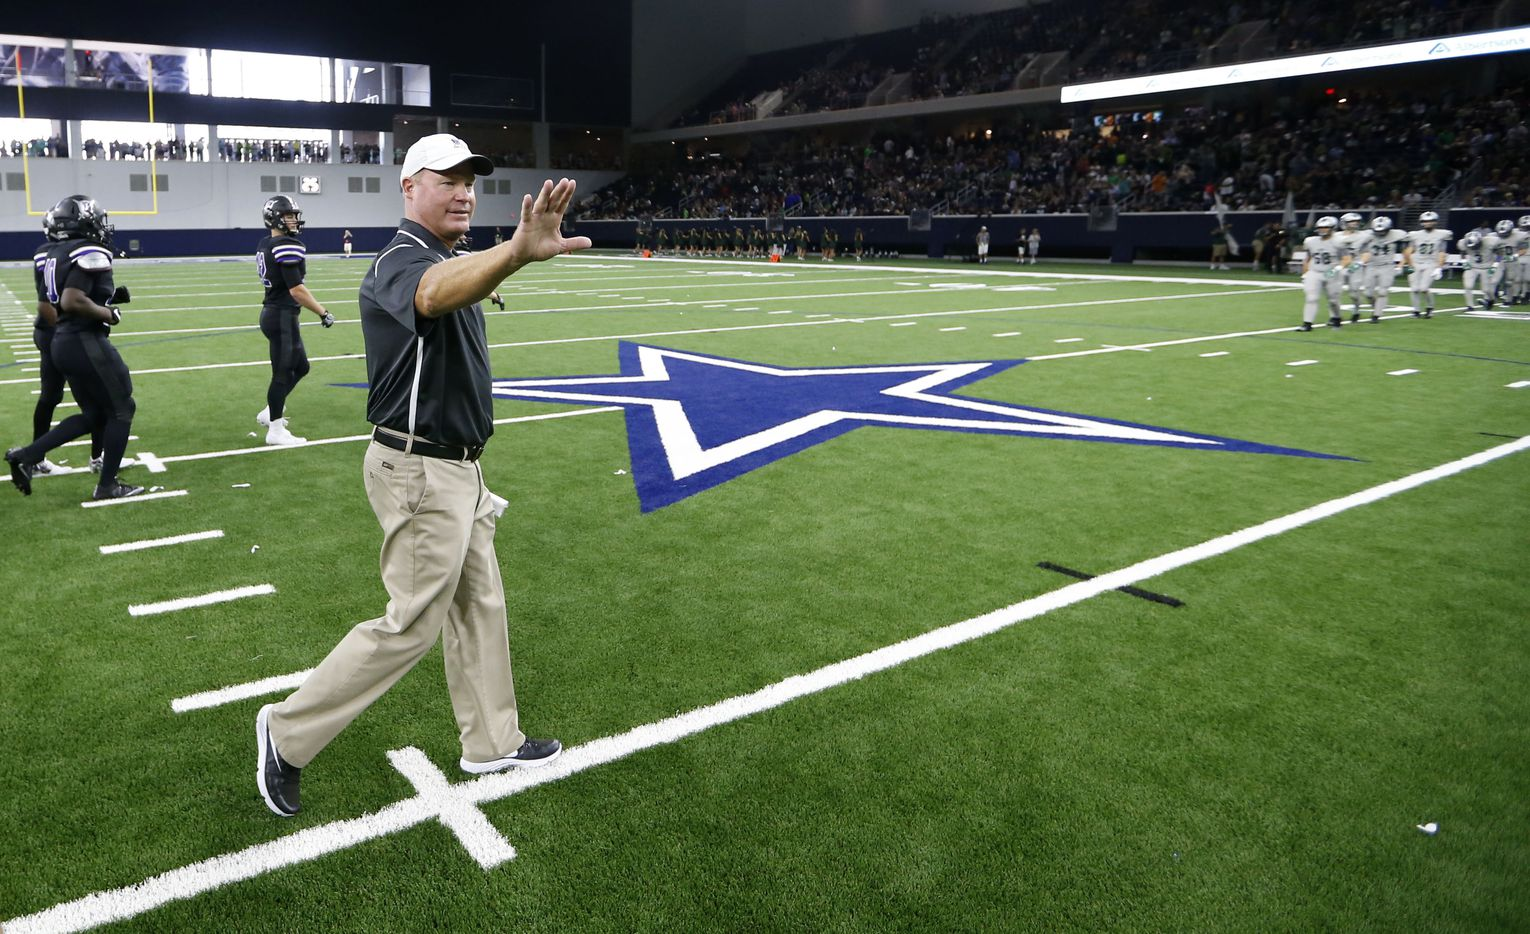 Independence High School head coach Kyle Story waves to the officials after defeating Reedy High School during the first high school football game at The Star in Frisco on Saturday, August 27, 2016. (Vernon Bryant/The Dallas Morning News)